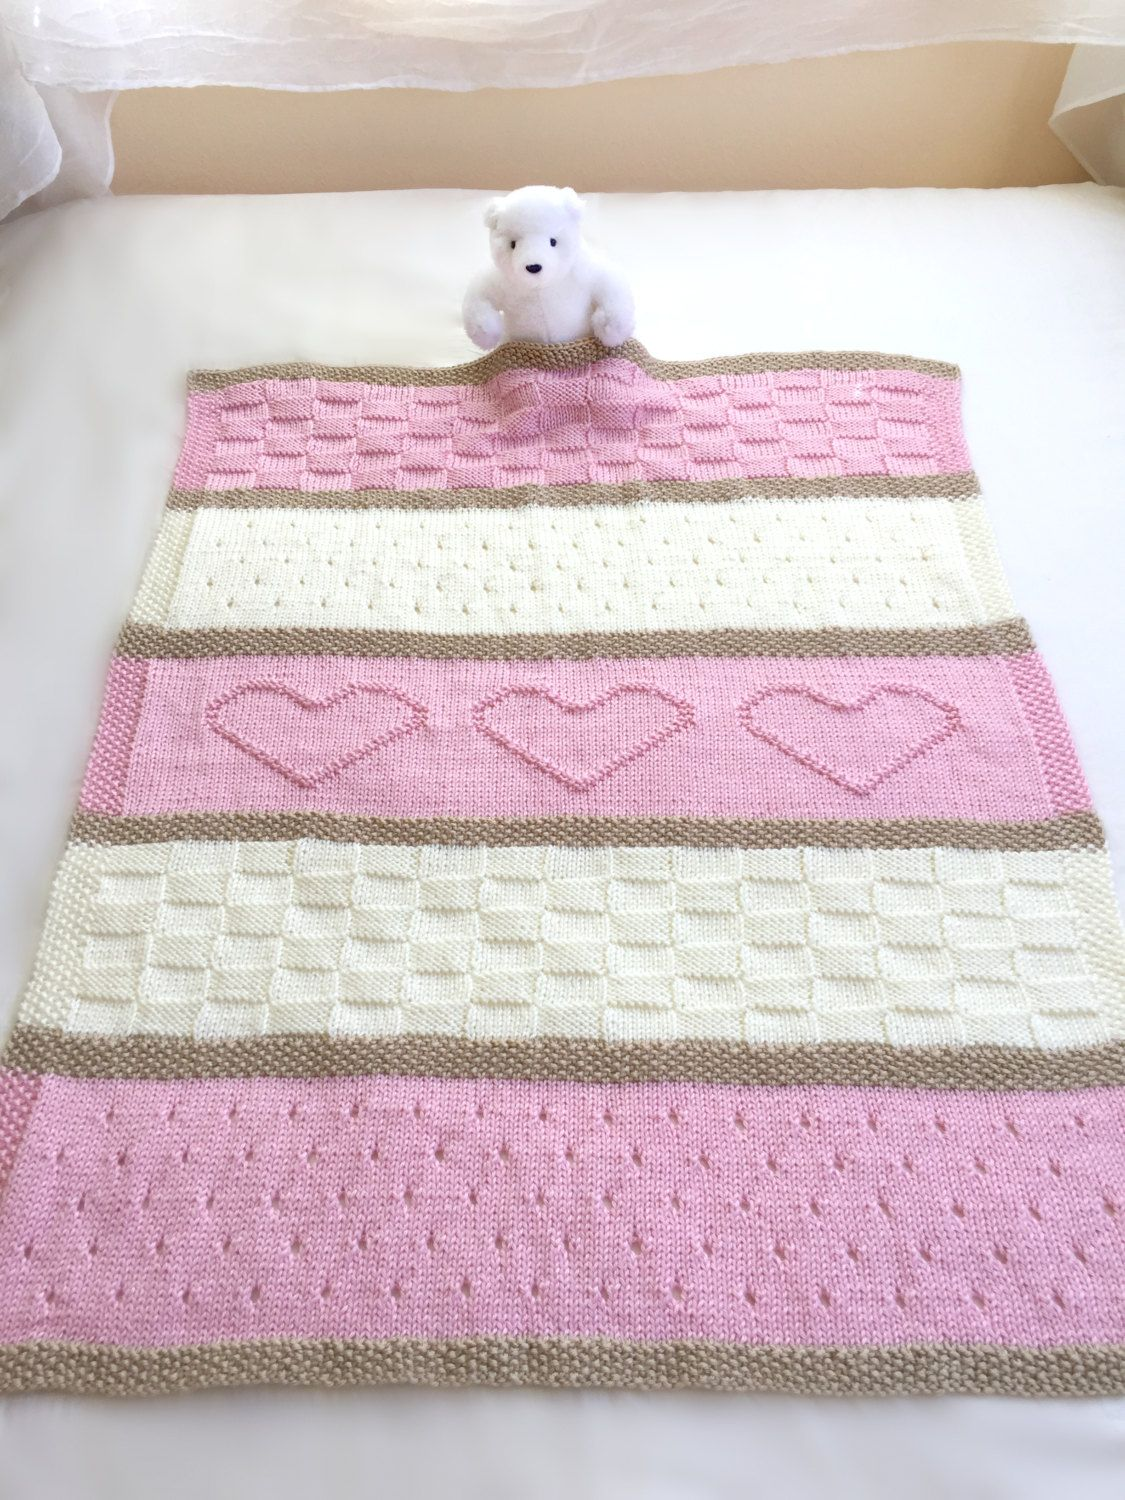 Baby blanket pattern knit baby blanket by deboraholearypattern baby blanket pattern knit baby blanket pattern heart baby blanket pattern crib blanket knitting pattern by deborah oleary bankloansurffo Images